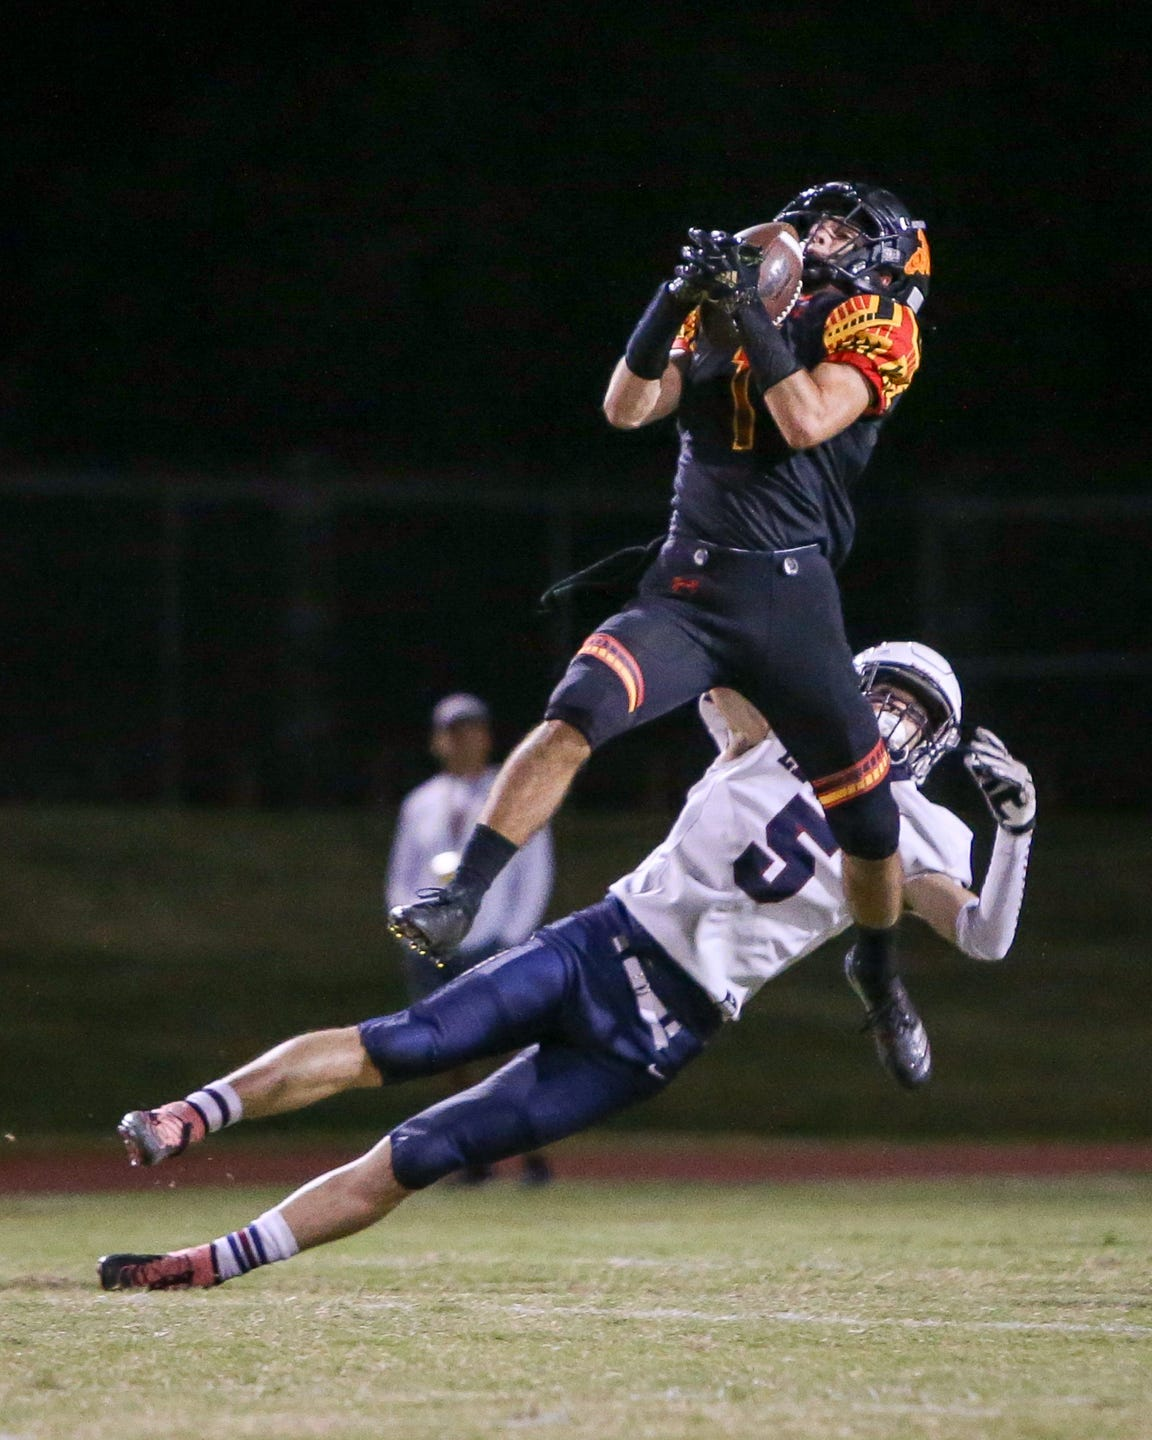 Palm Desert's Jacob McIlroy snags an interception against La Quinta in the Aztecs' 34-32 win.